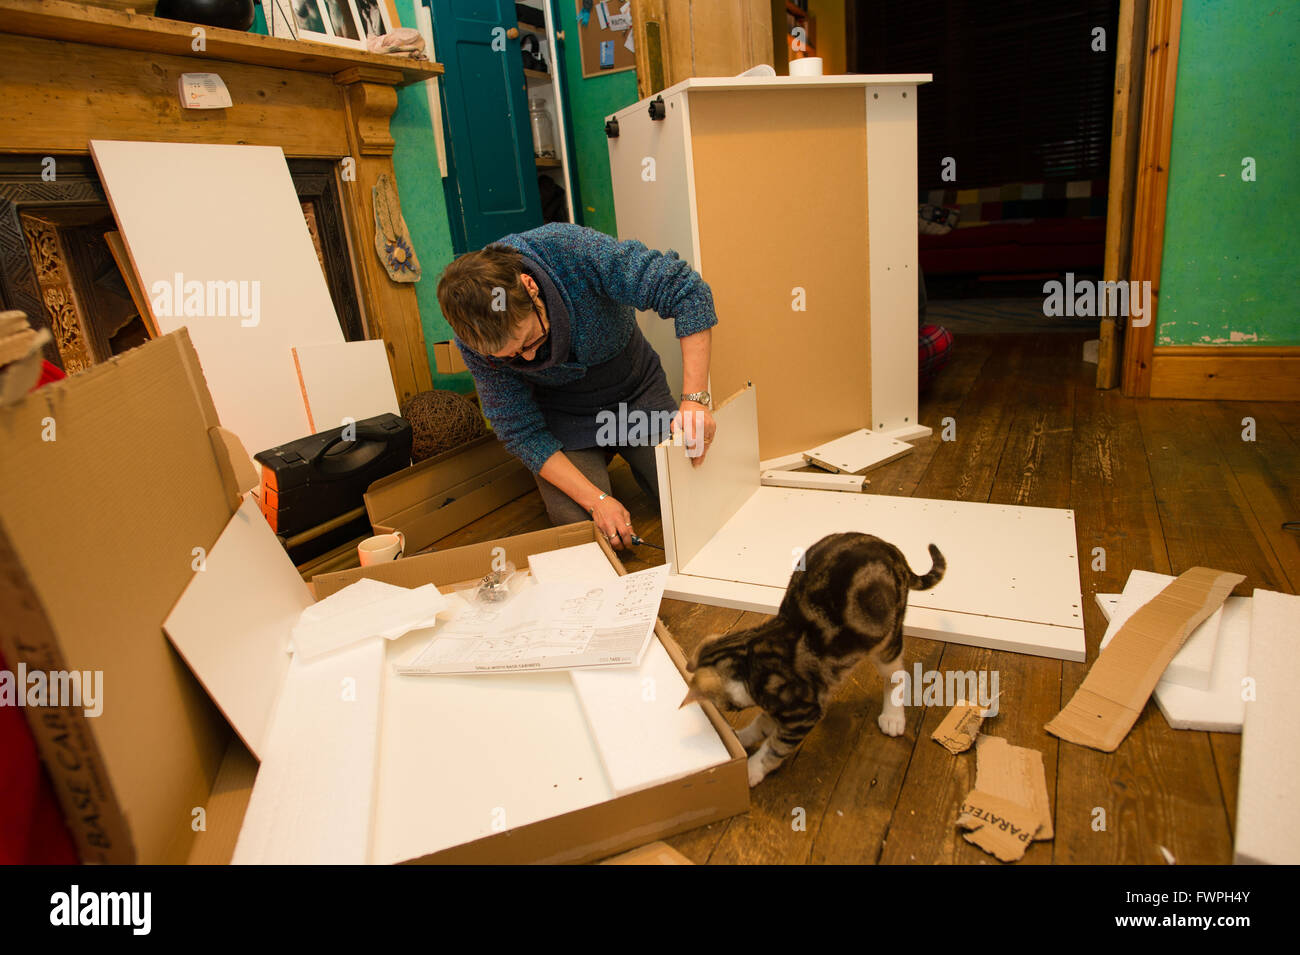 Ikea Küche Selbstmontage Units Stockfotos And Units Bilder Alamy